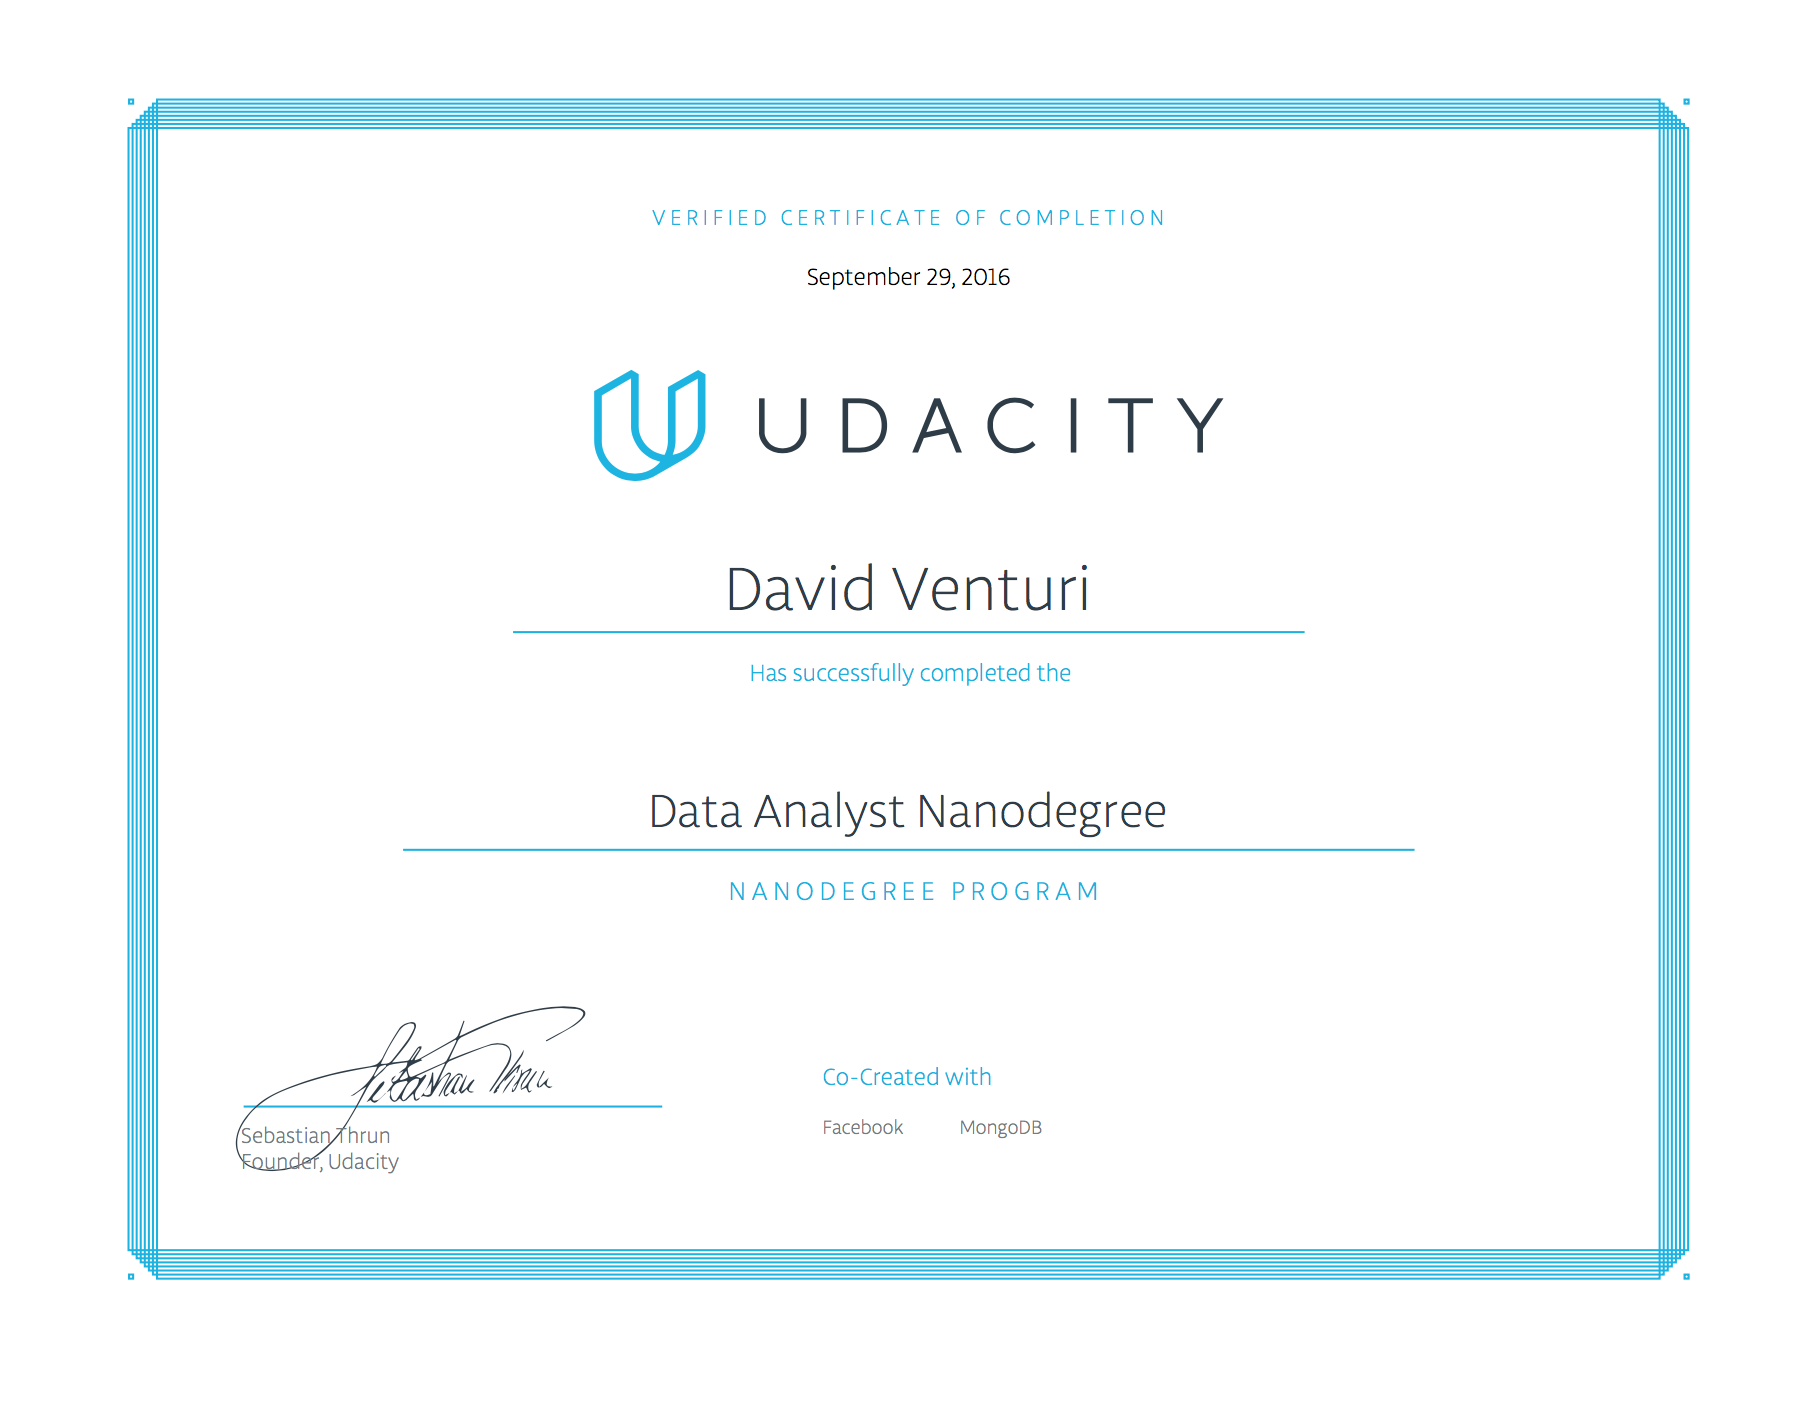 Review udacity data analyst nanodegree program freecodecamp conclusion xflitez Image collections